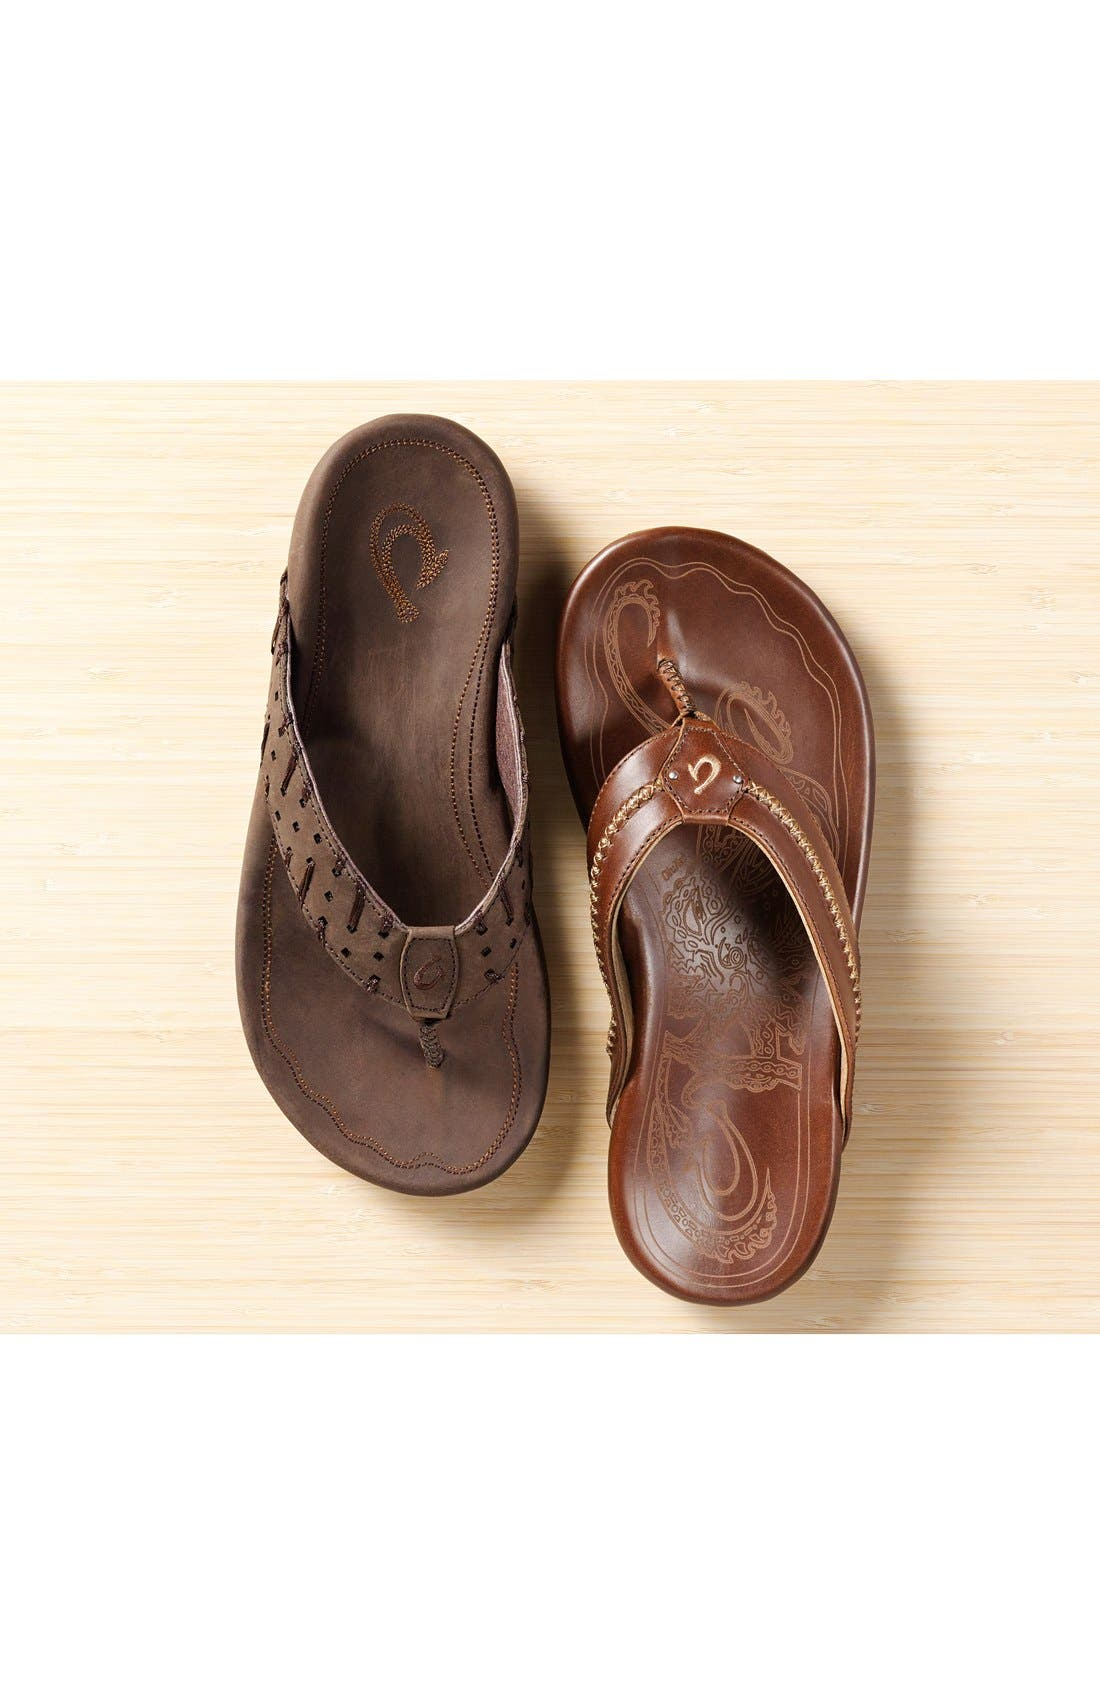 Mea Ola Flip Flop,                             Alternate thumbnail 9, color,                             TERRA/ DARK WOOD LEATHER